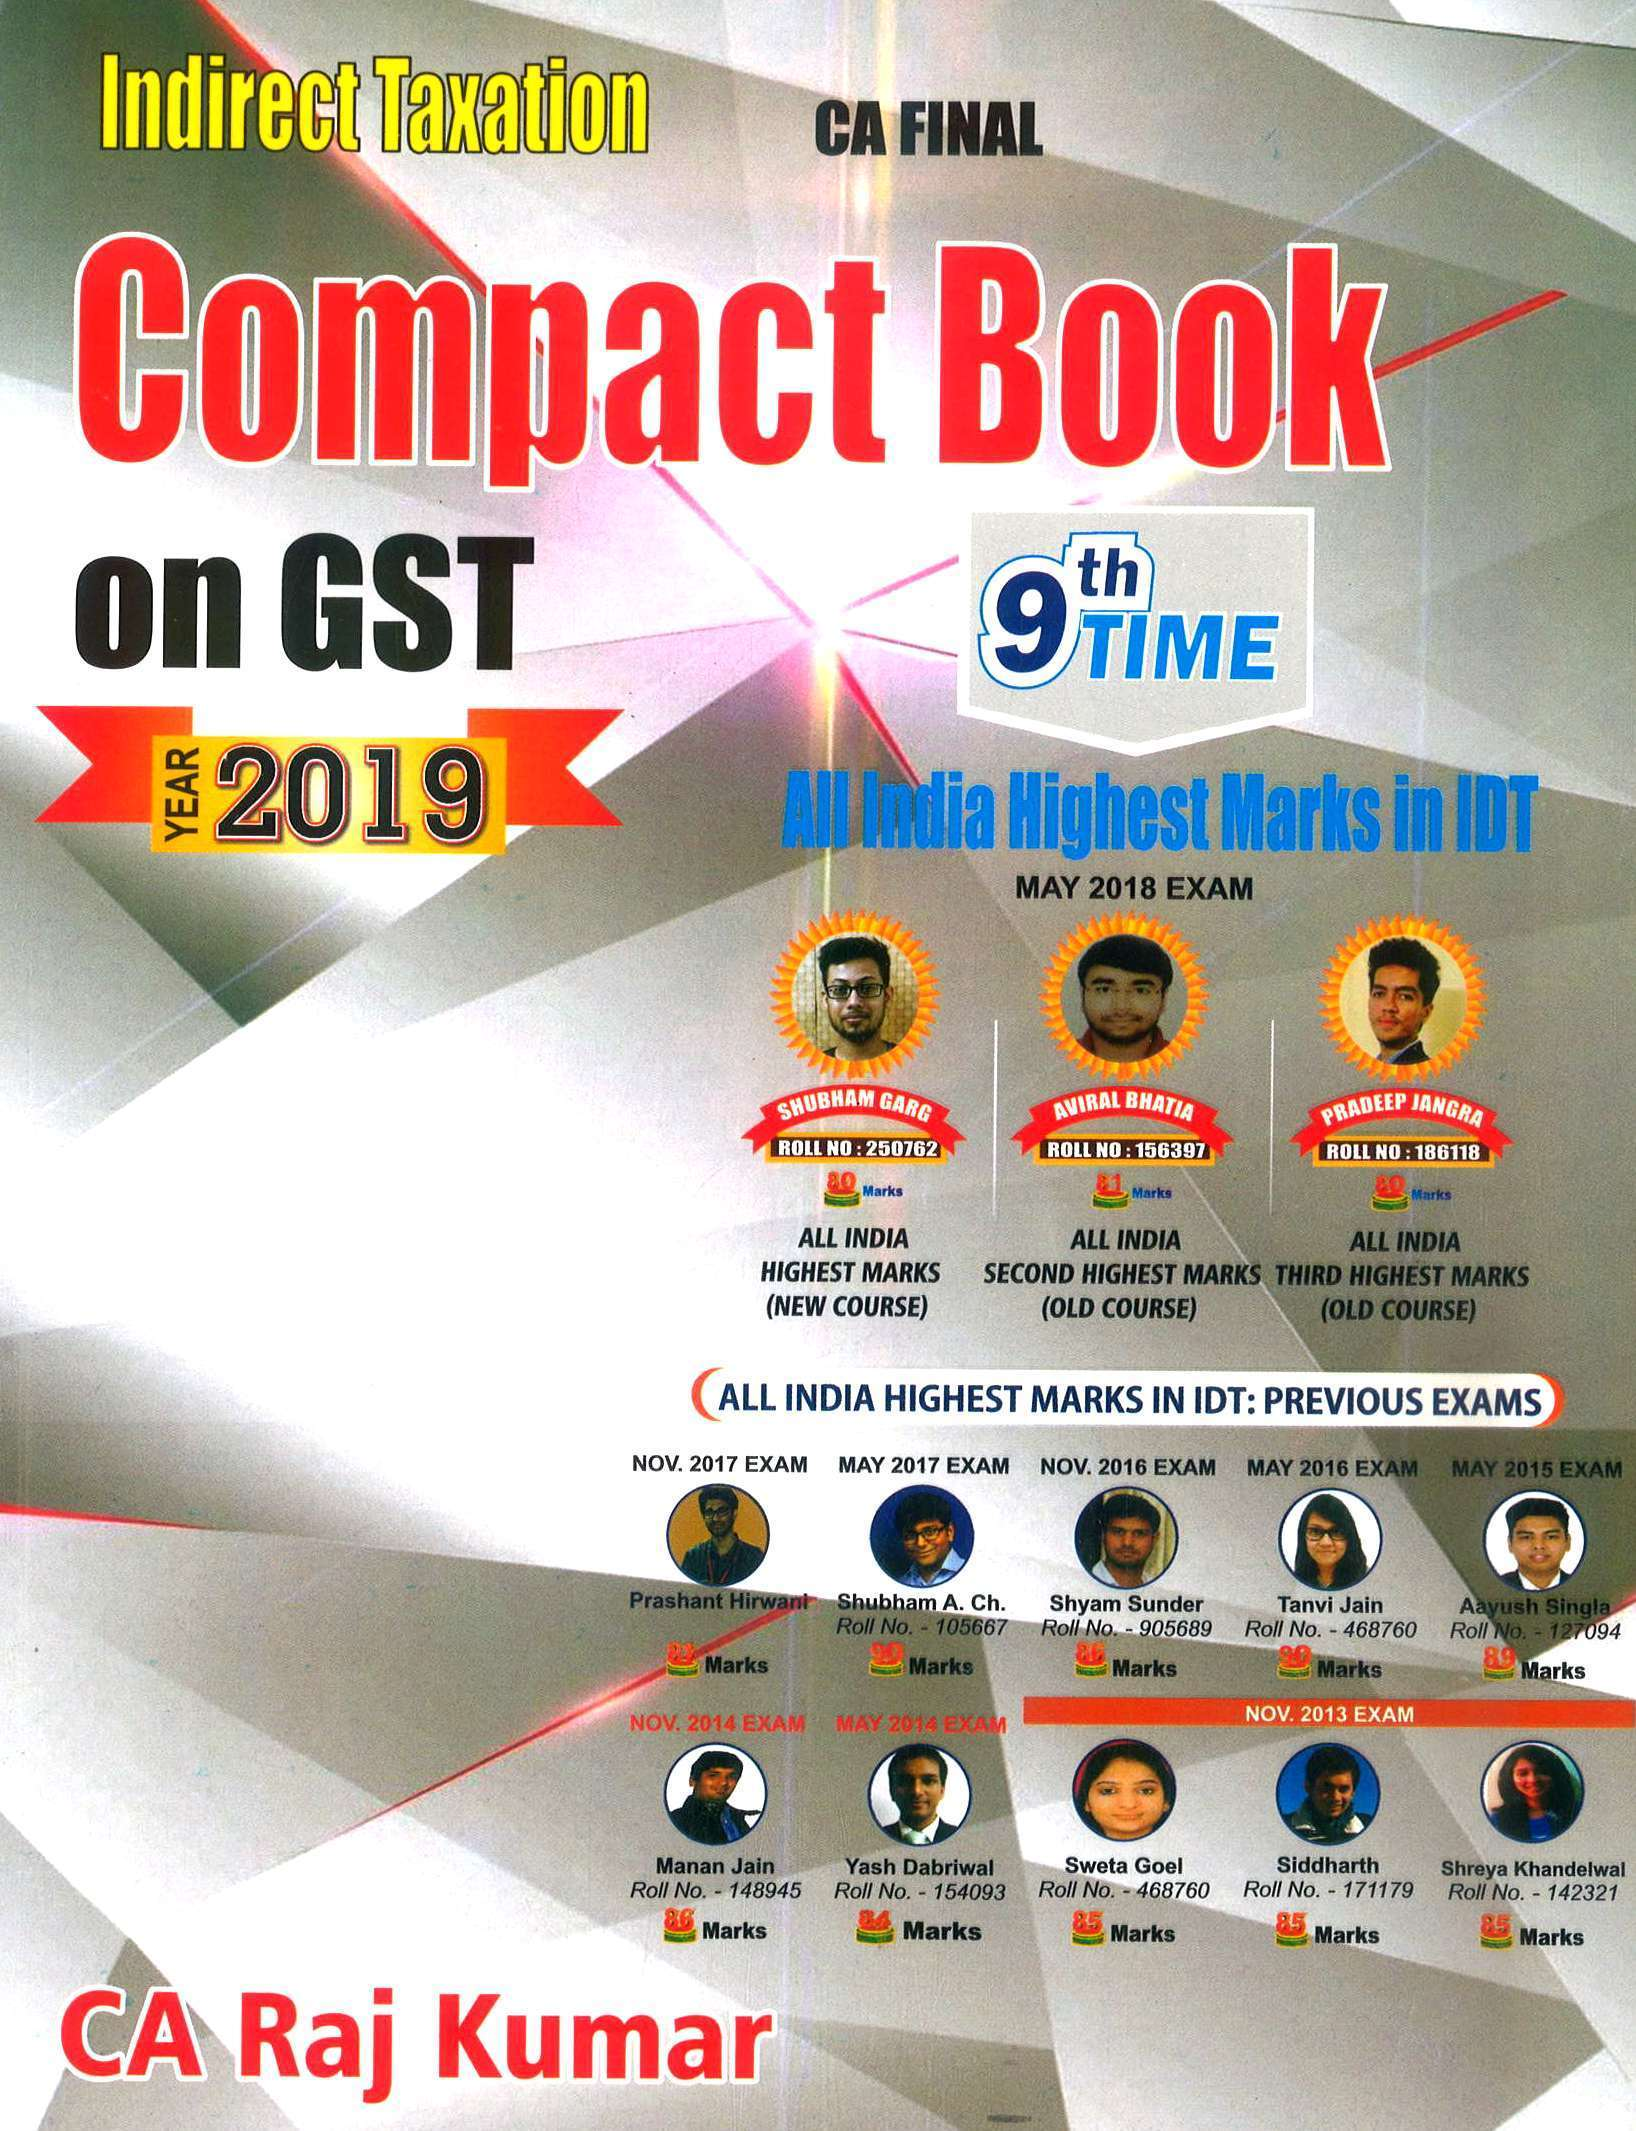 Pooja Law House Indirect Taxation Compact Book on GST Old And New Syllabus for CA Final By CA Raj Kumar Applicable for May 2019 Exam